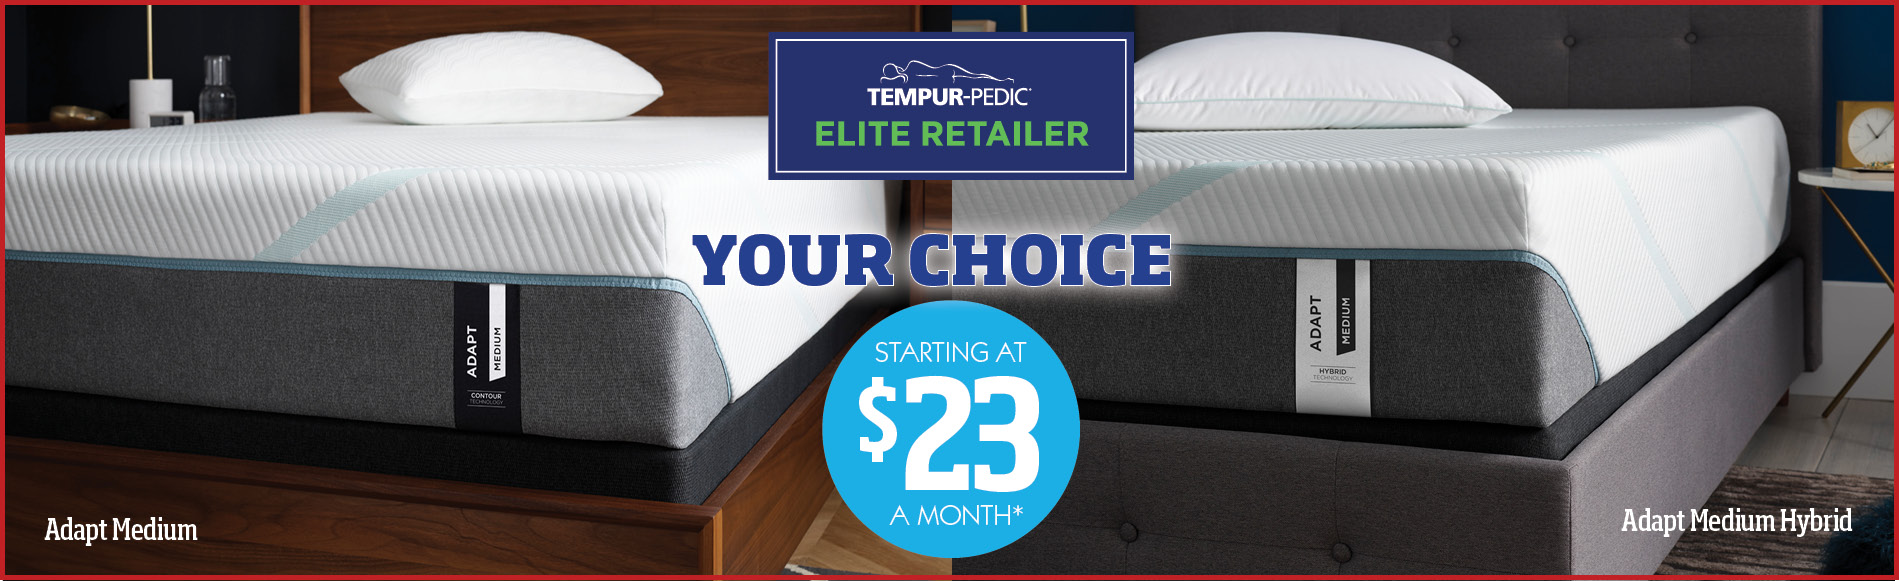 Your choice on Tempurpedic adapt starting at $23 a month